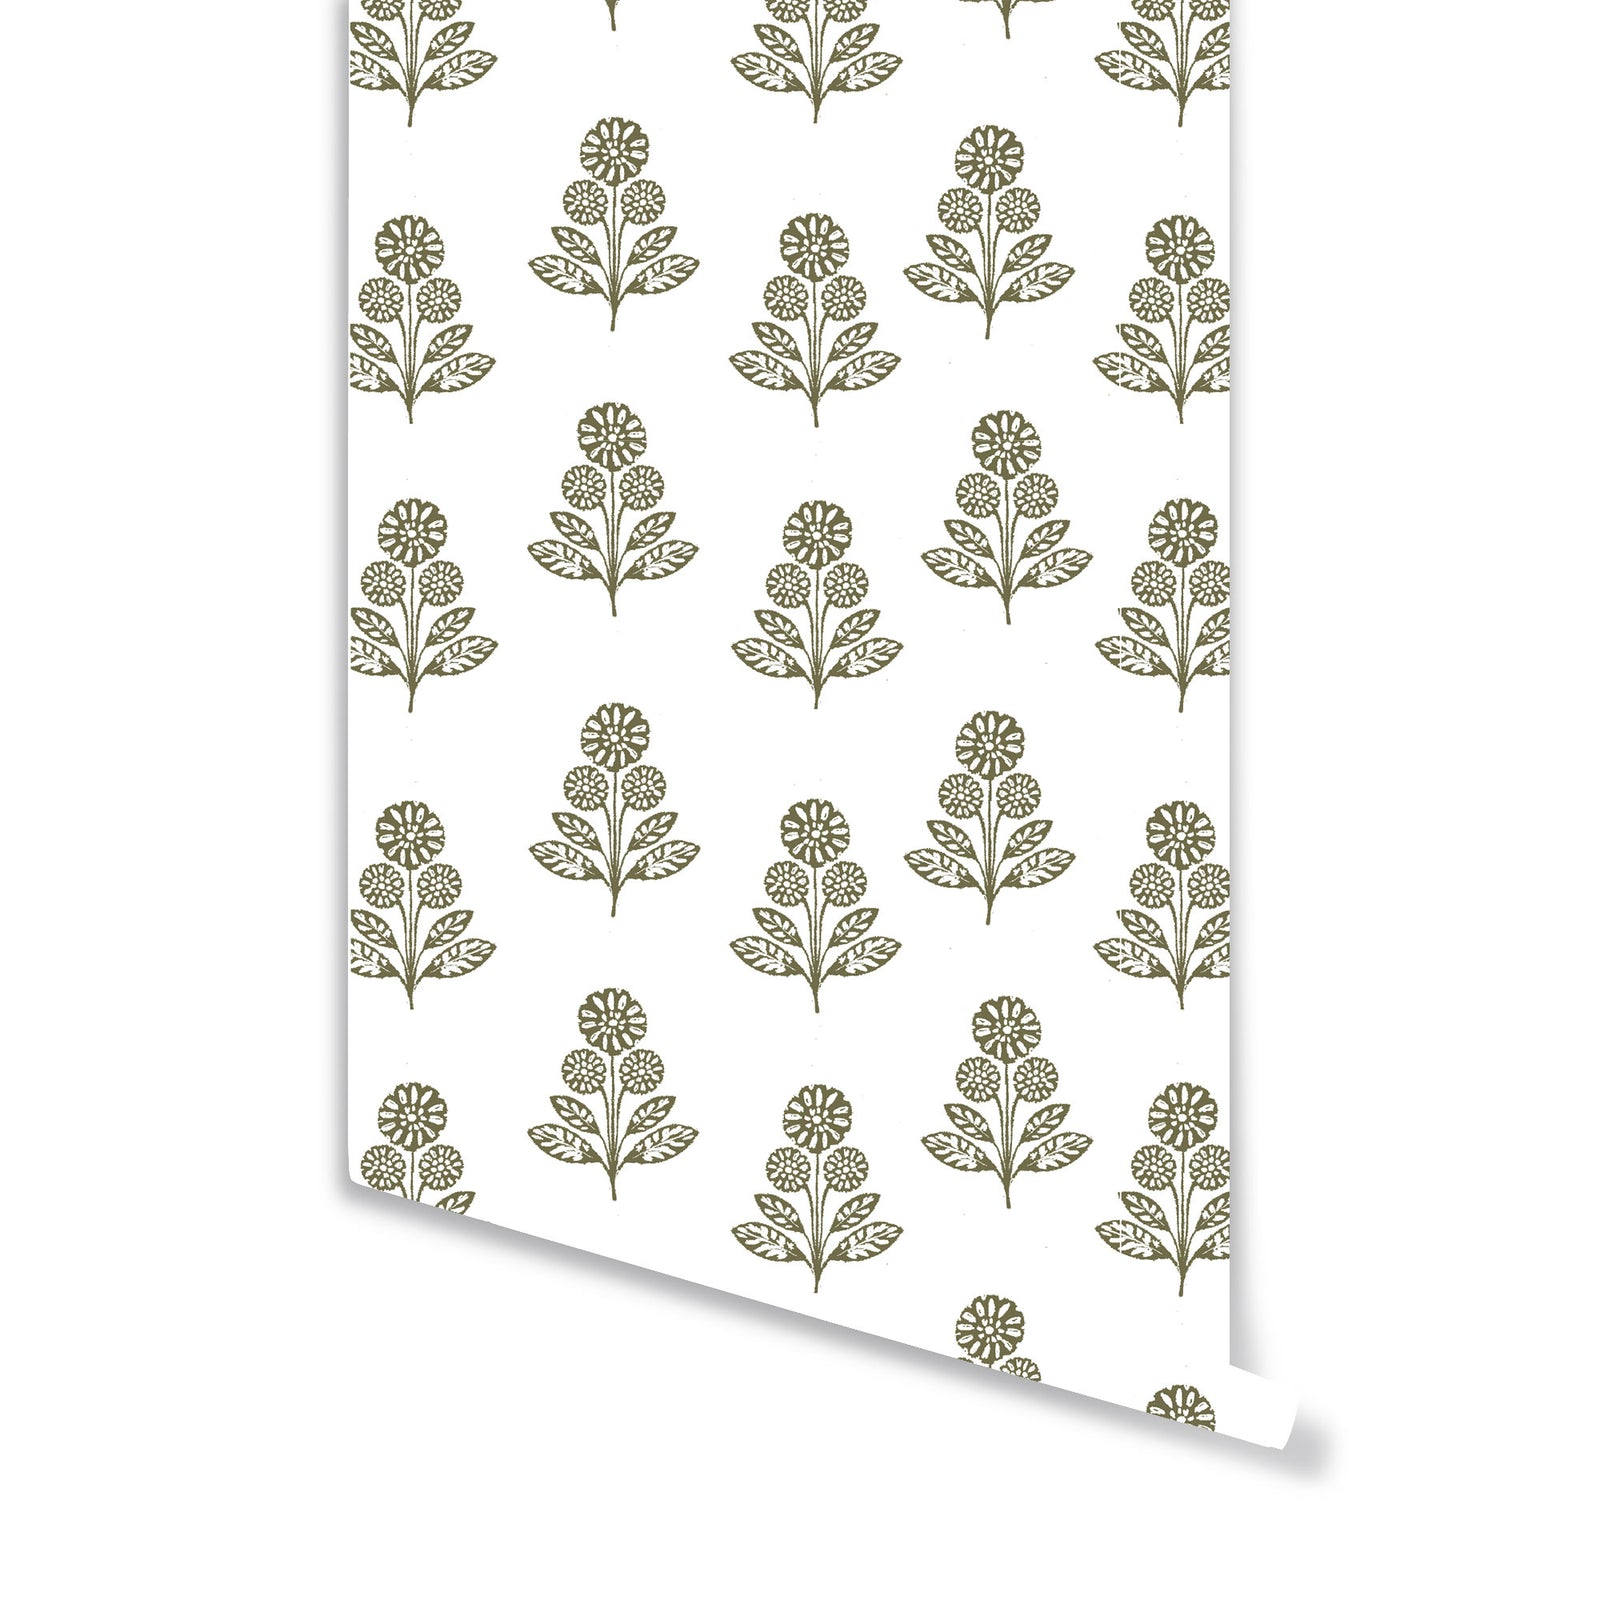 Stella Floral Wallpaper in Olive